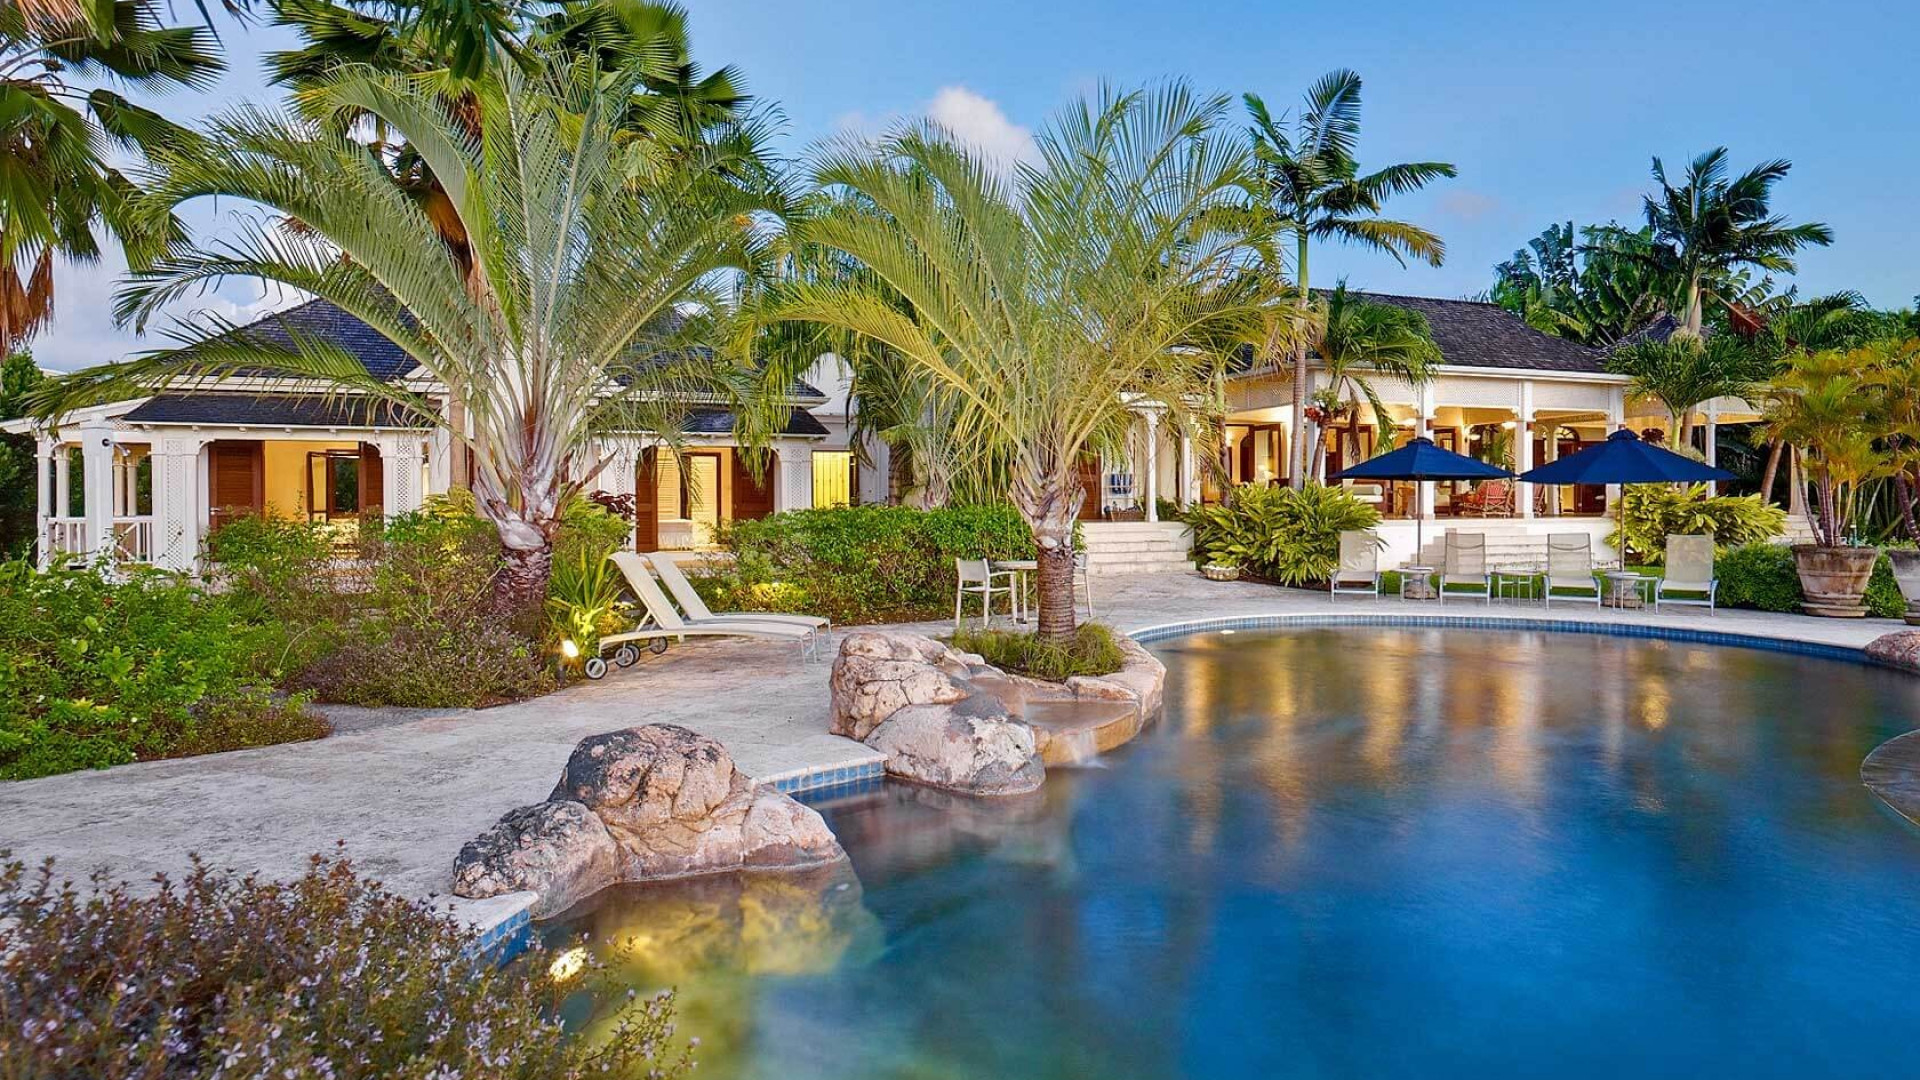 Luxury 6 Bedroom Villa Sugar Hill With Infinity Pool with Slide